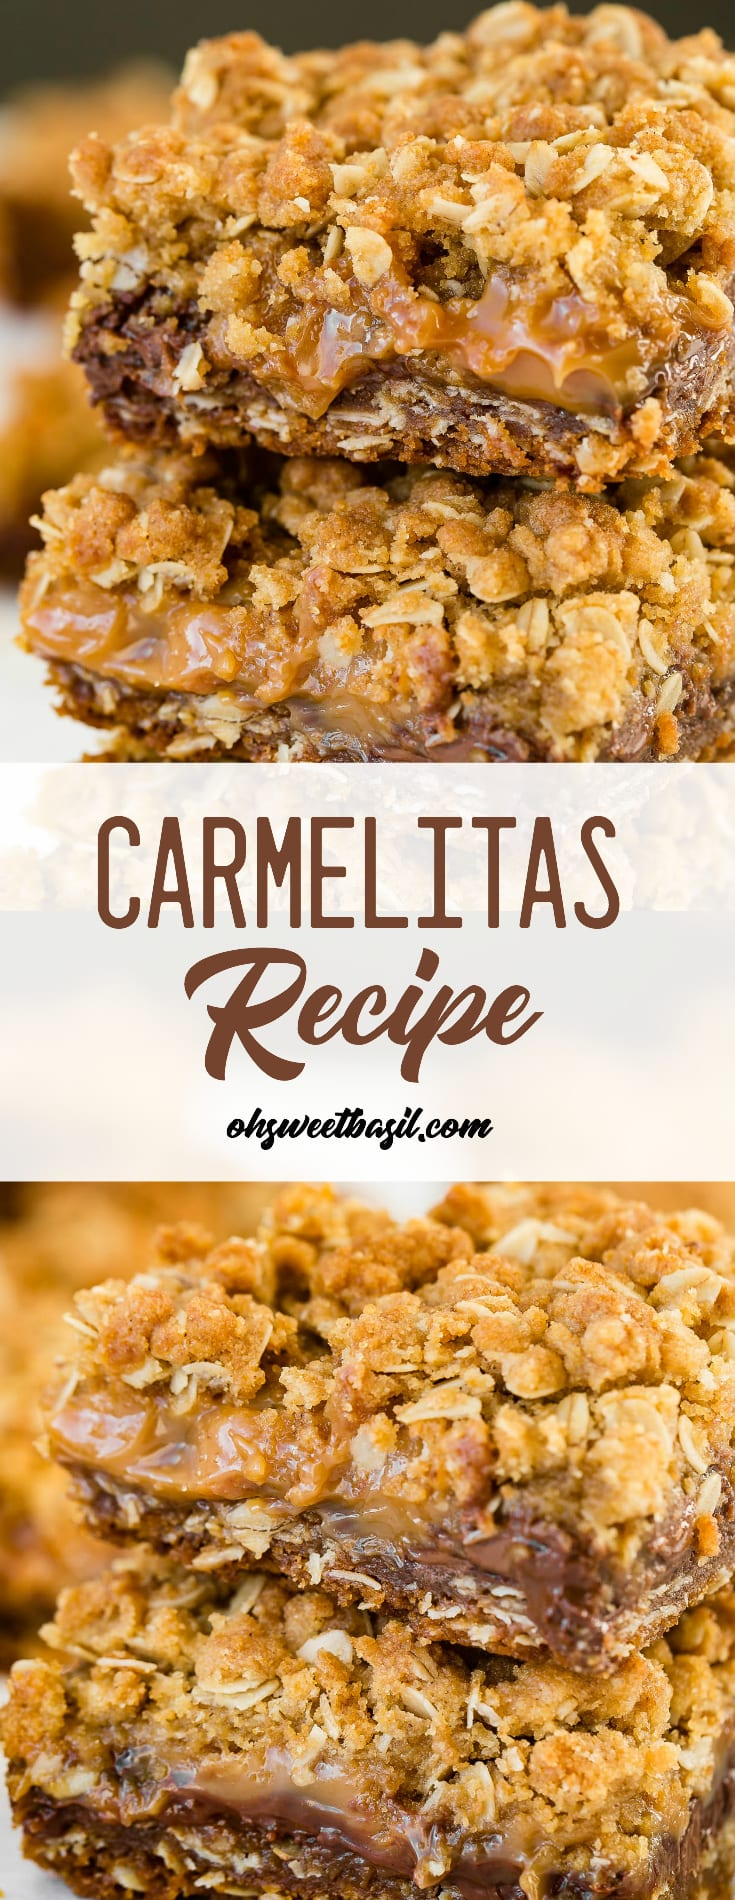 A stack of carmelitas with chocolate, caramel and an oat crumble